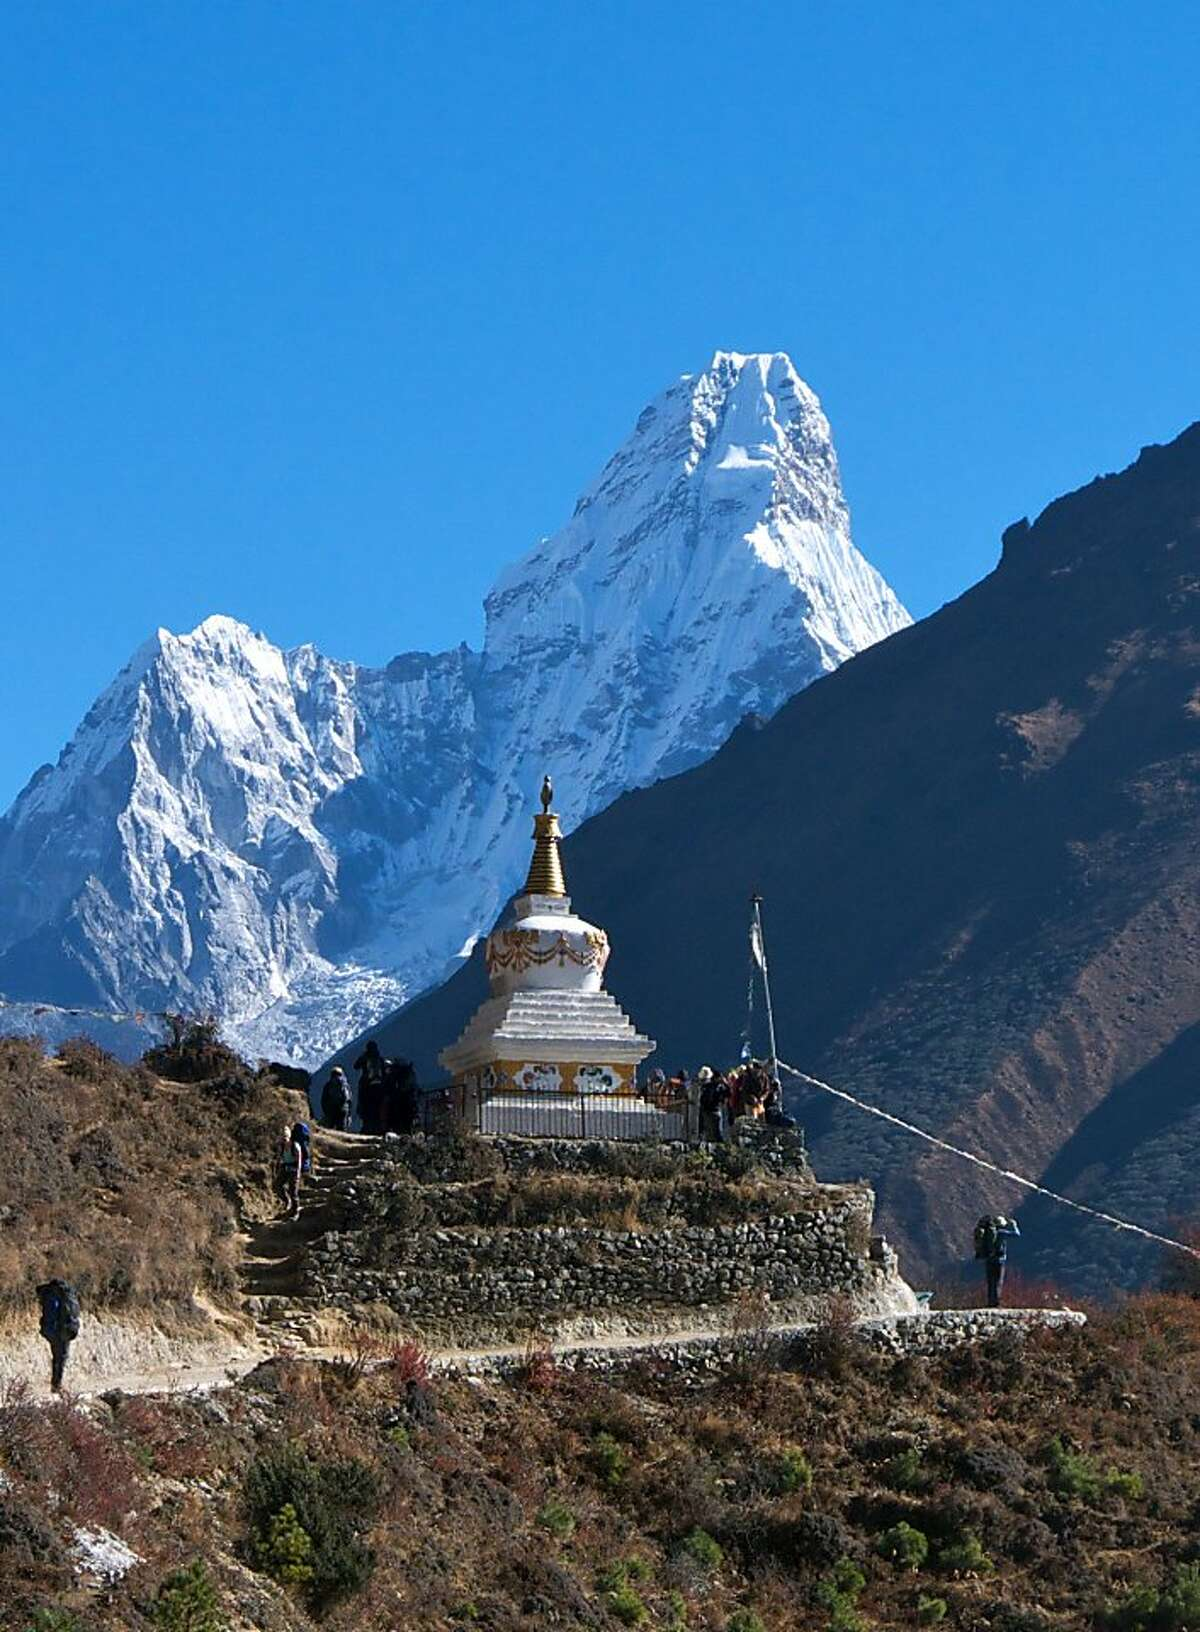 A chorten echoes the stunning shape of Ama Dablam, considered by many to be the most beautiful peak in the Himalayas.